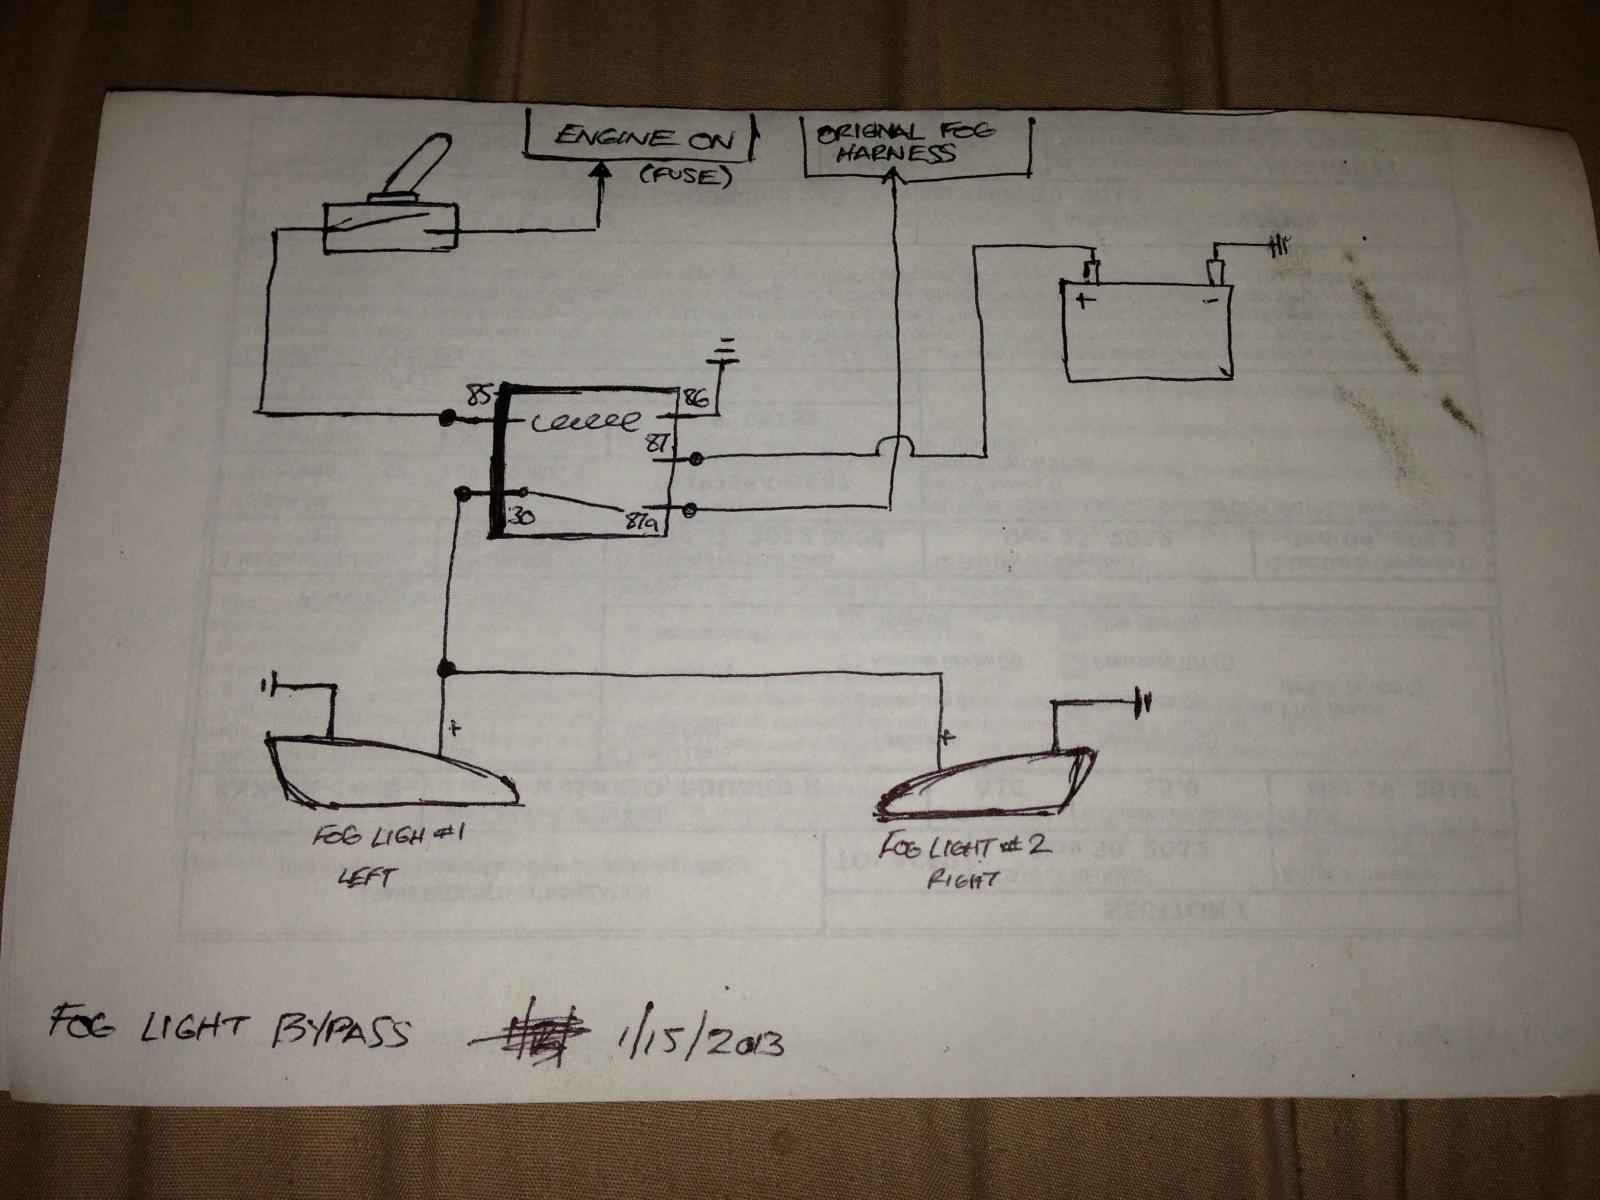 Simple wiring diagram to bypass foglights works wo headlights or w simple wiring diagram to bypass foglights works wo headlights or w highbeams cheapraybanclubmaster Images